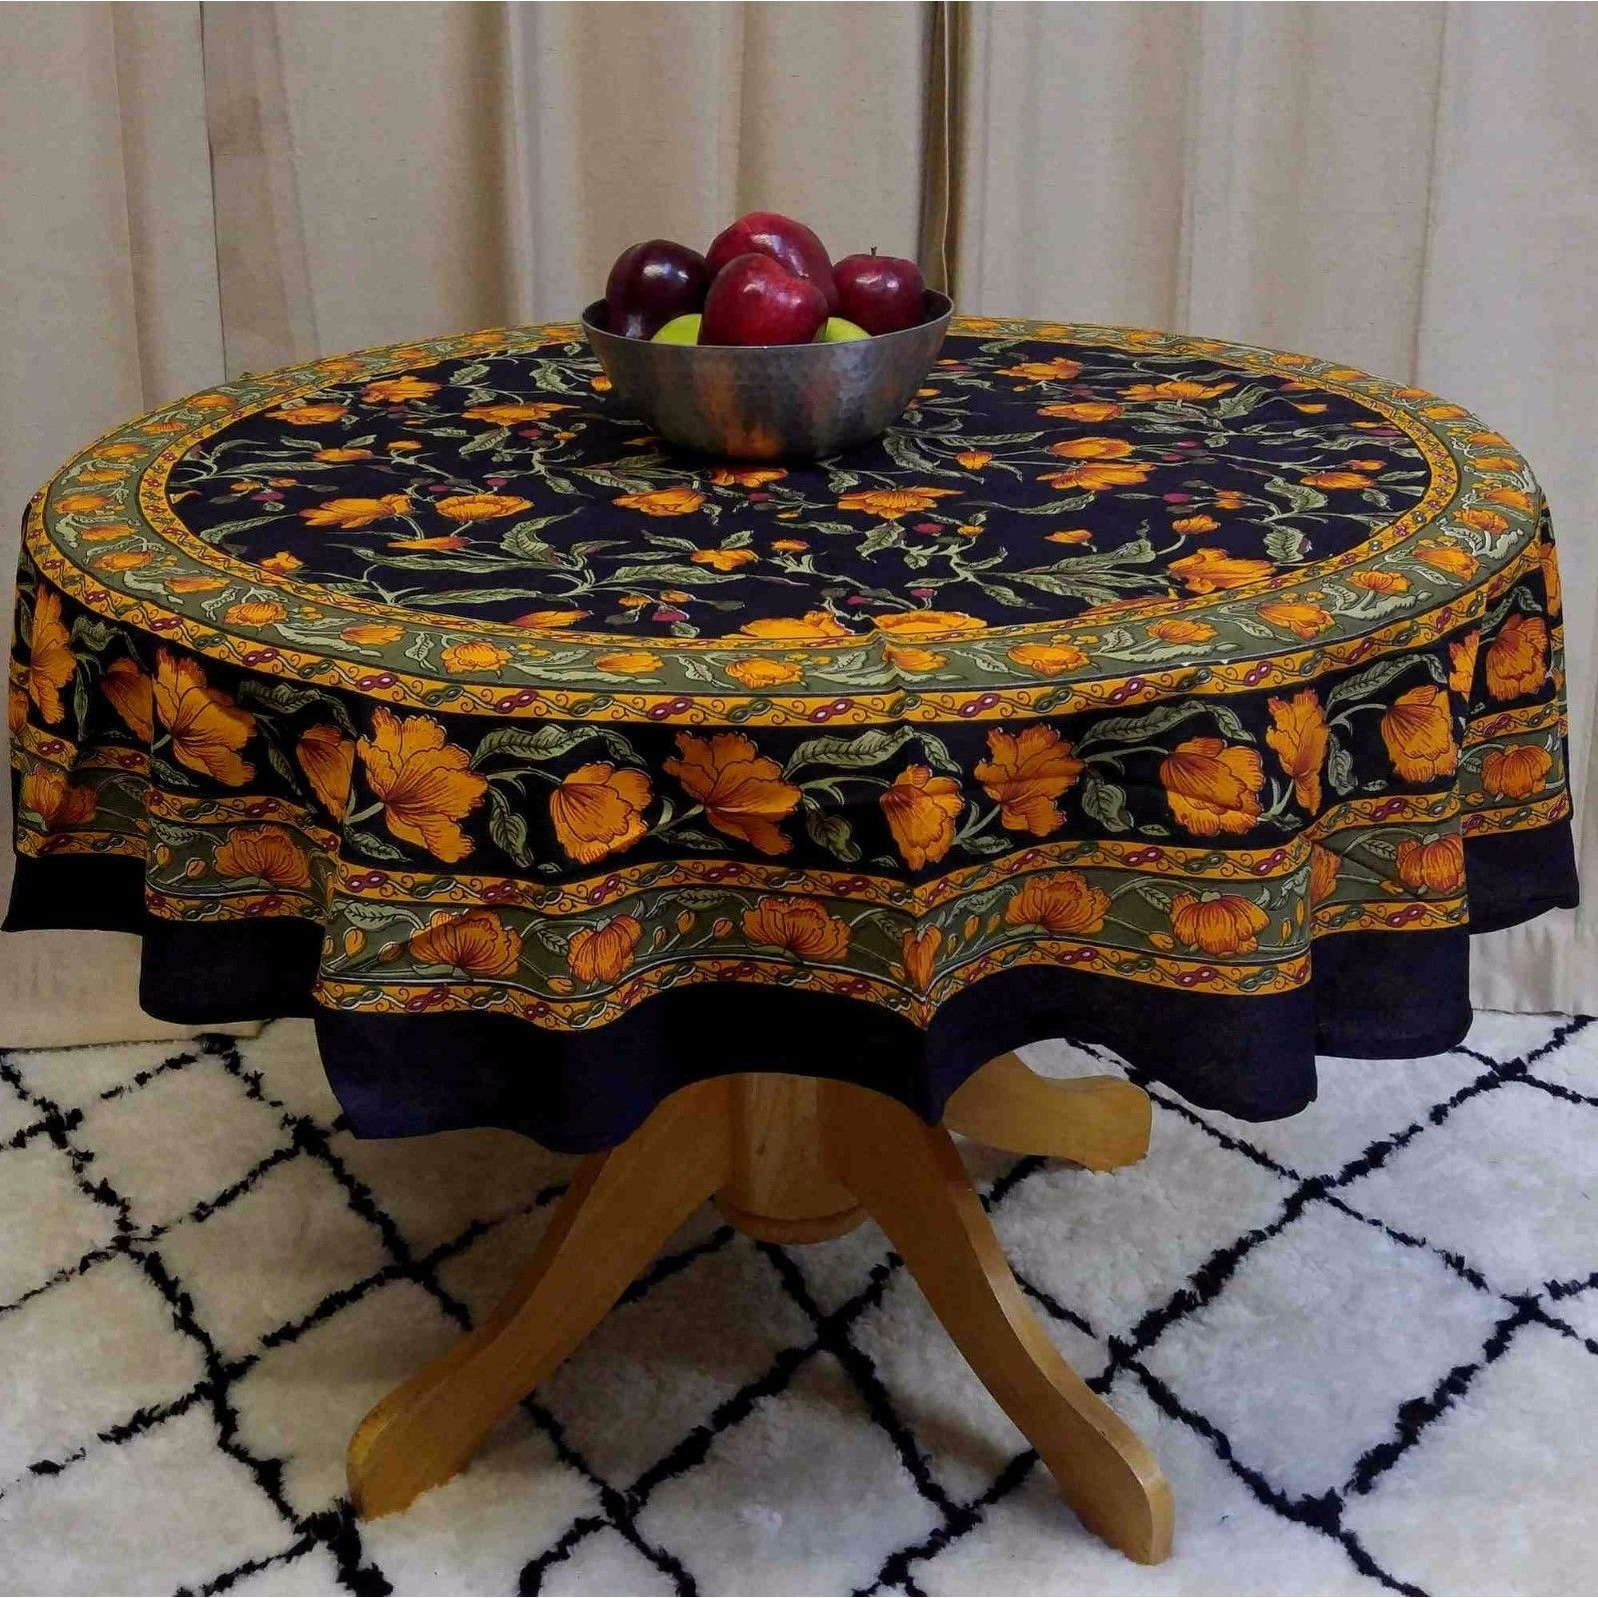 Beautiful Handmade Cotton French Floral Print Tablecloth 60 Inches 72 Inch 90 Inch Round On Sale Overstock 12210965